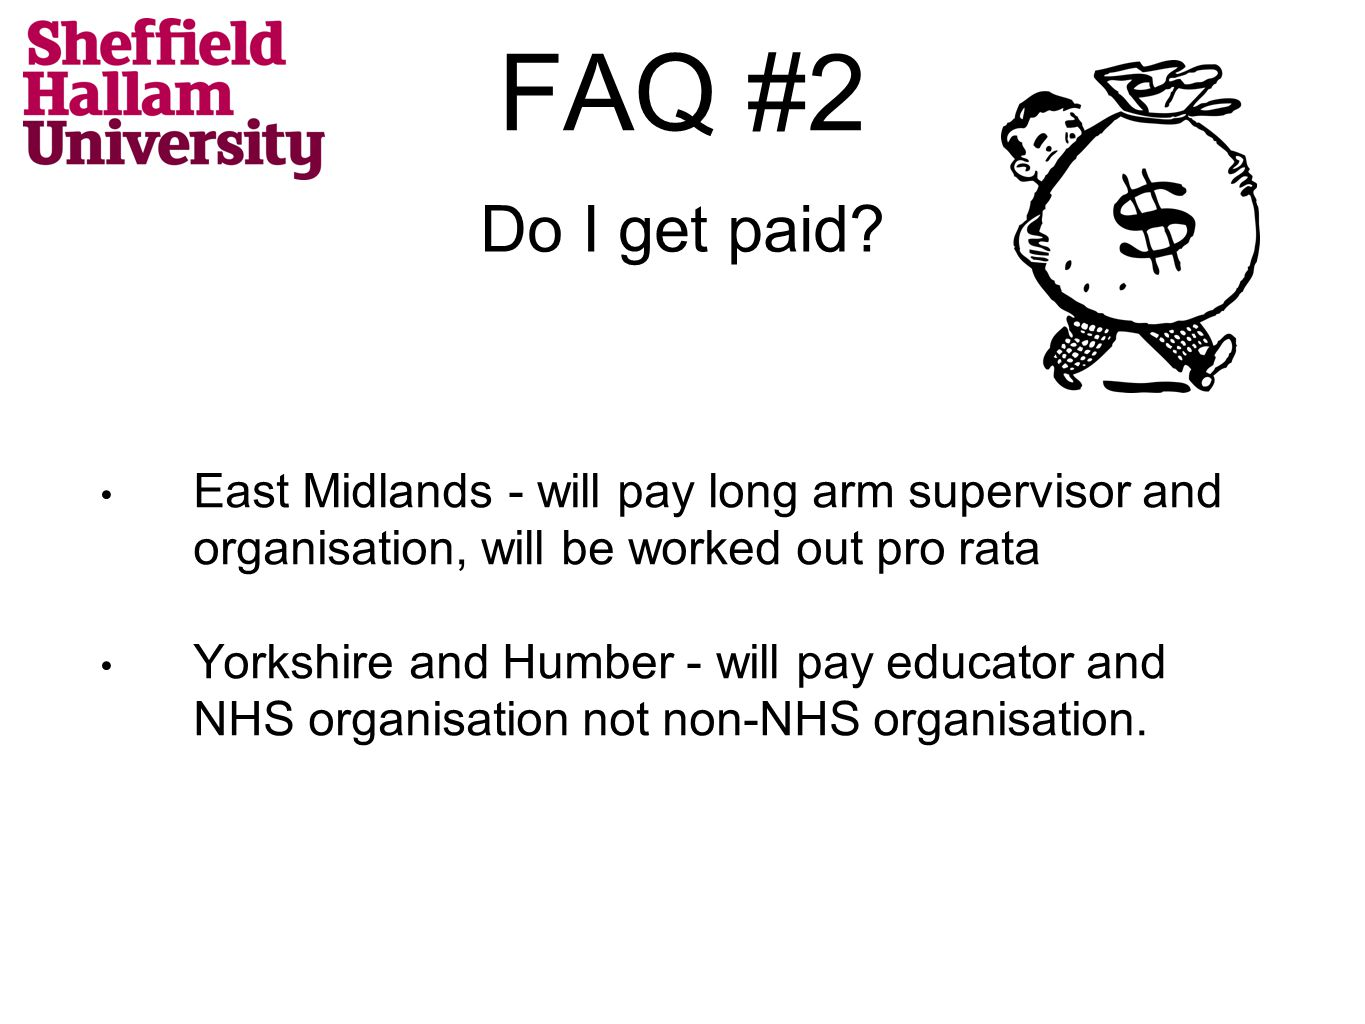 Do I get paid? East Midlands - will pay long arm supervisor and organisation, will be worked out pro rata Yorkshire and Humber - will pay educator and